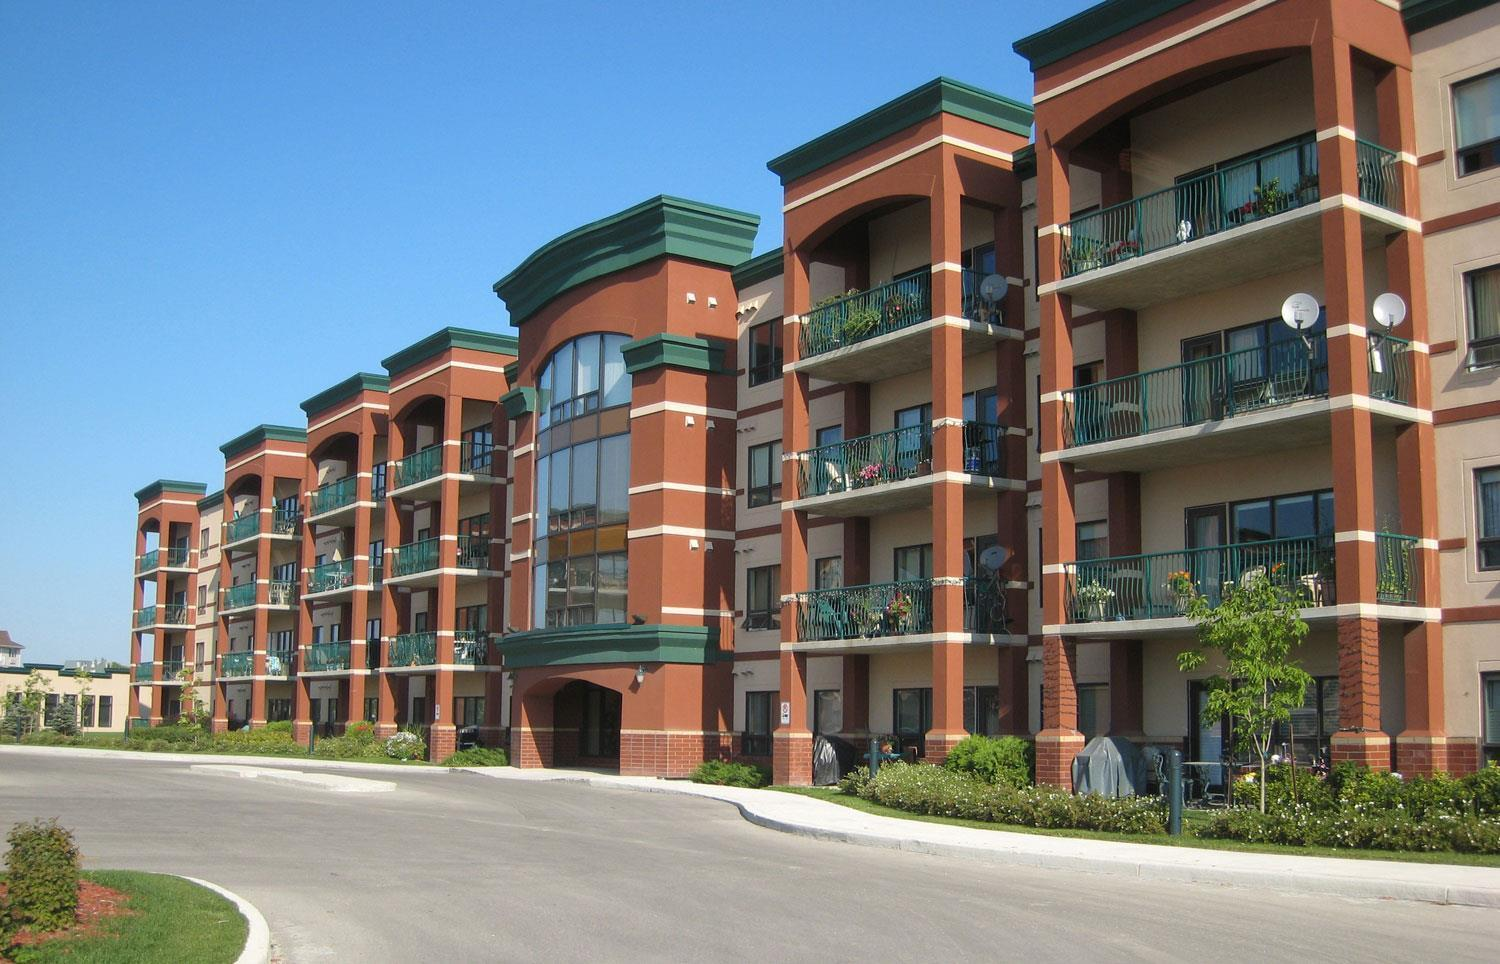 Condominiums in Winnipeg Manitoba